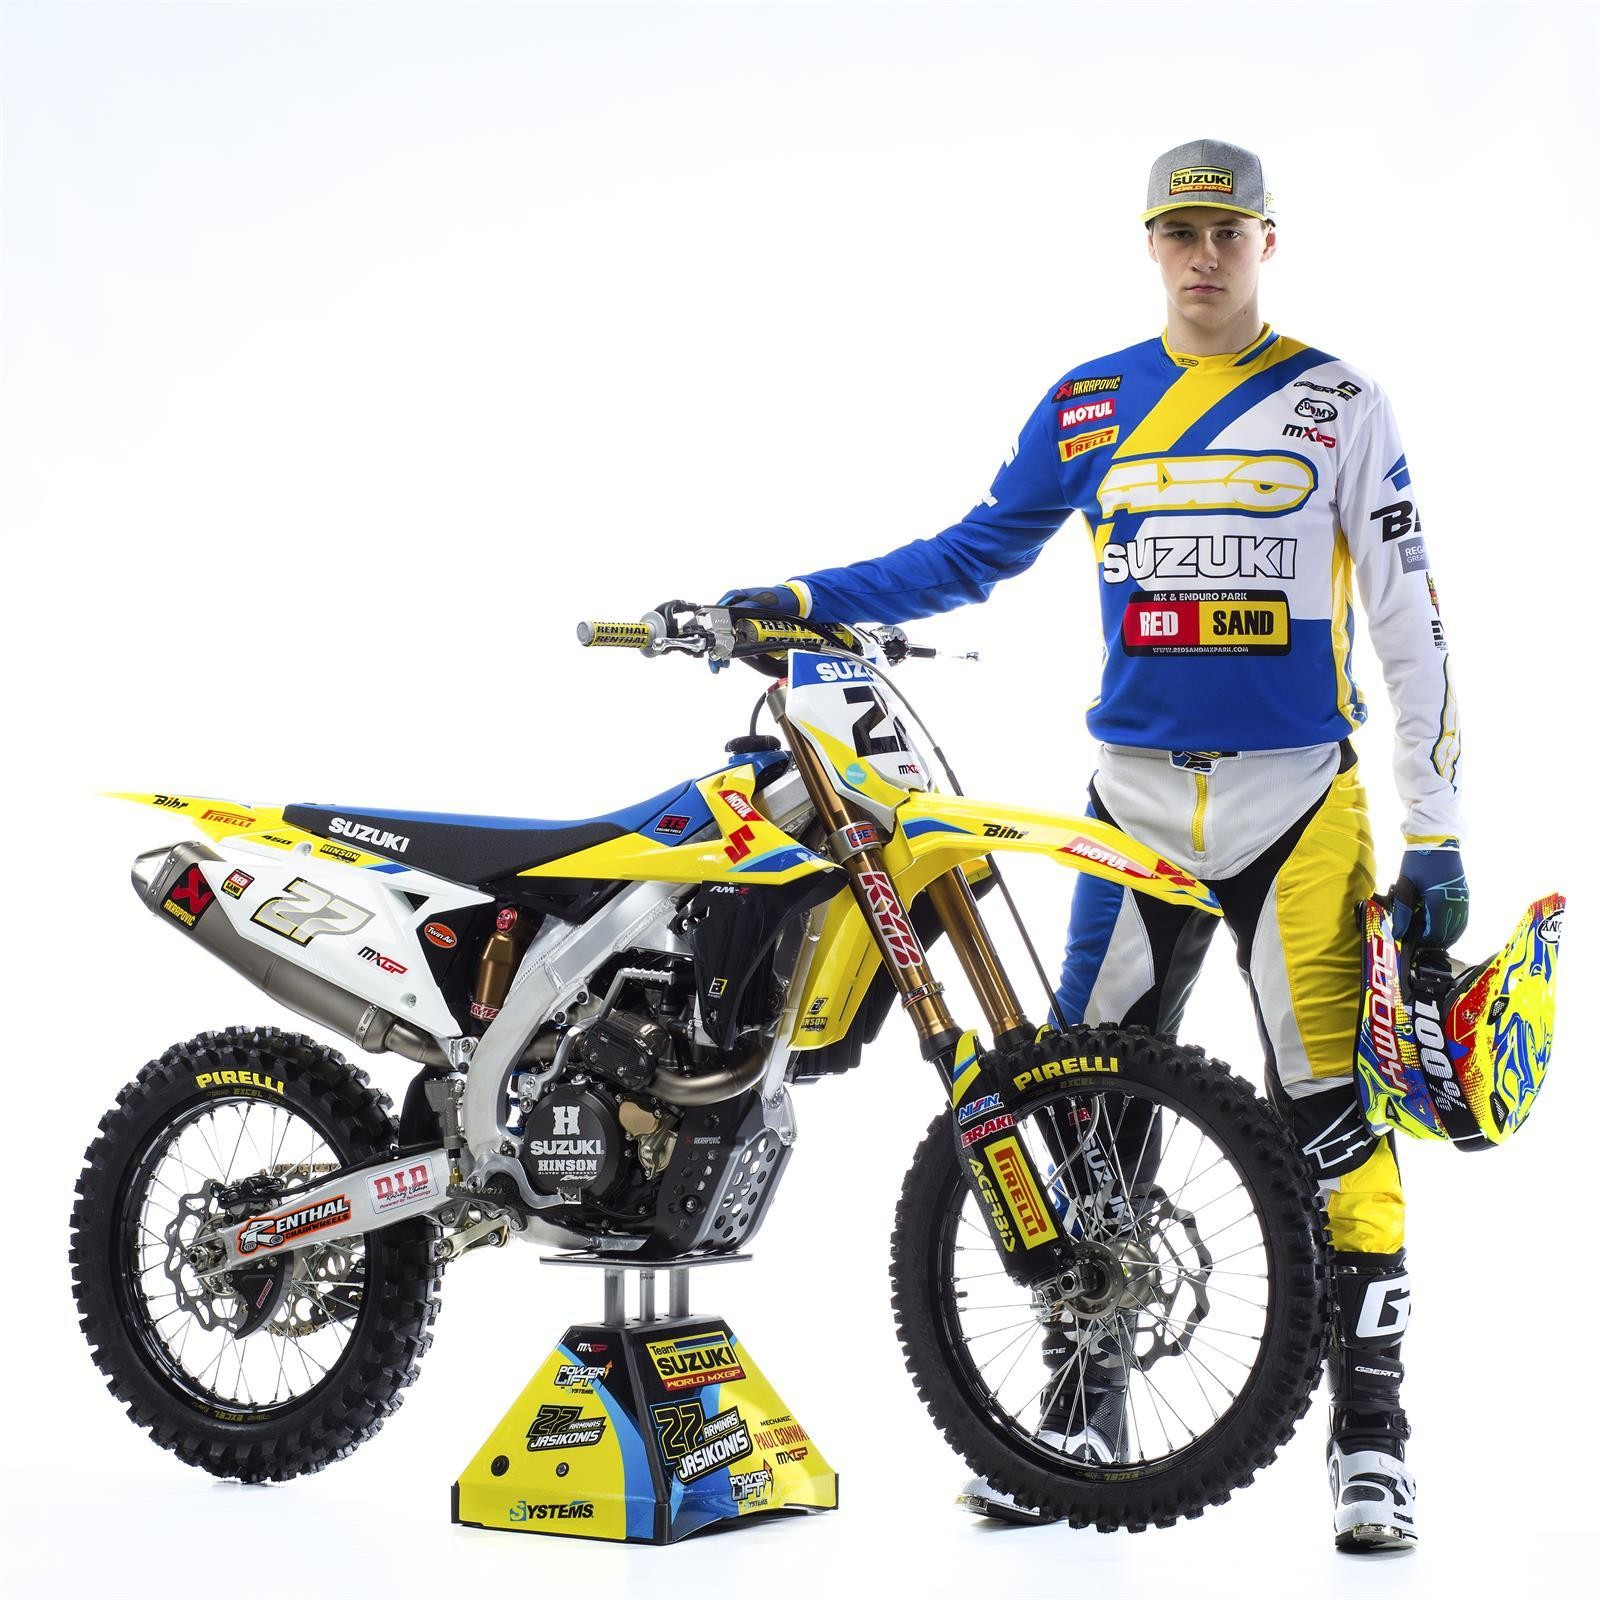 Arminas Jasikonis and his 2018 Suzuki World MXGP RM-Z450 - First Look: 2017 Suzuki World MXGP Team - Motocross Pictures - Vital MX